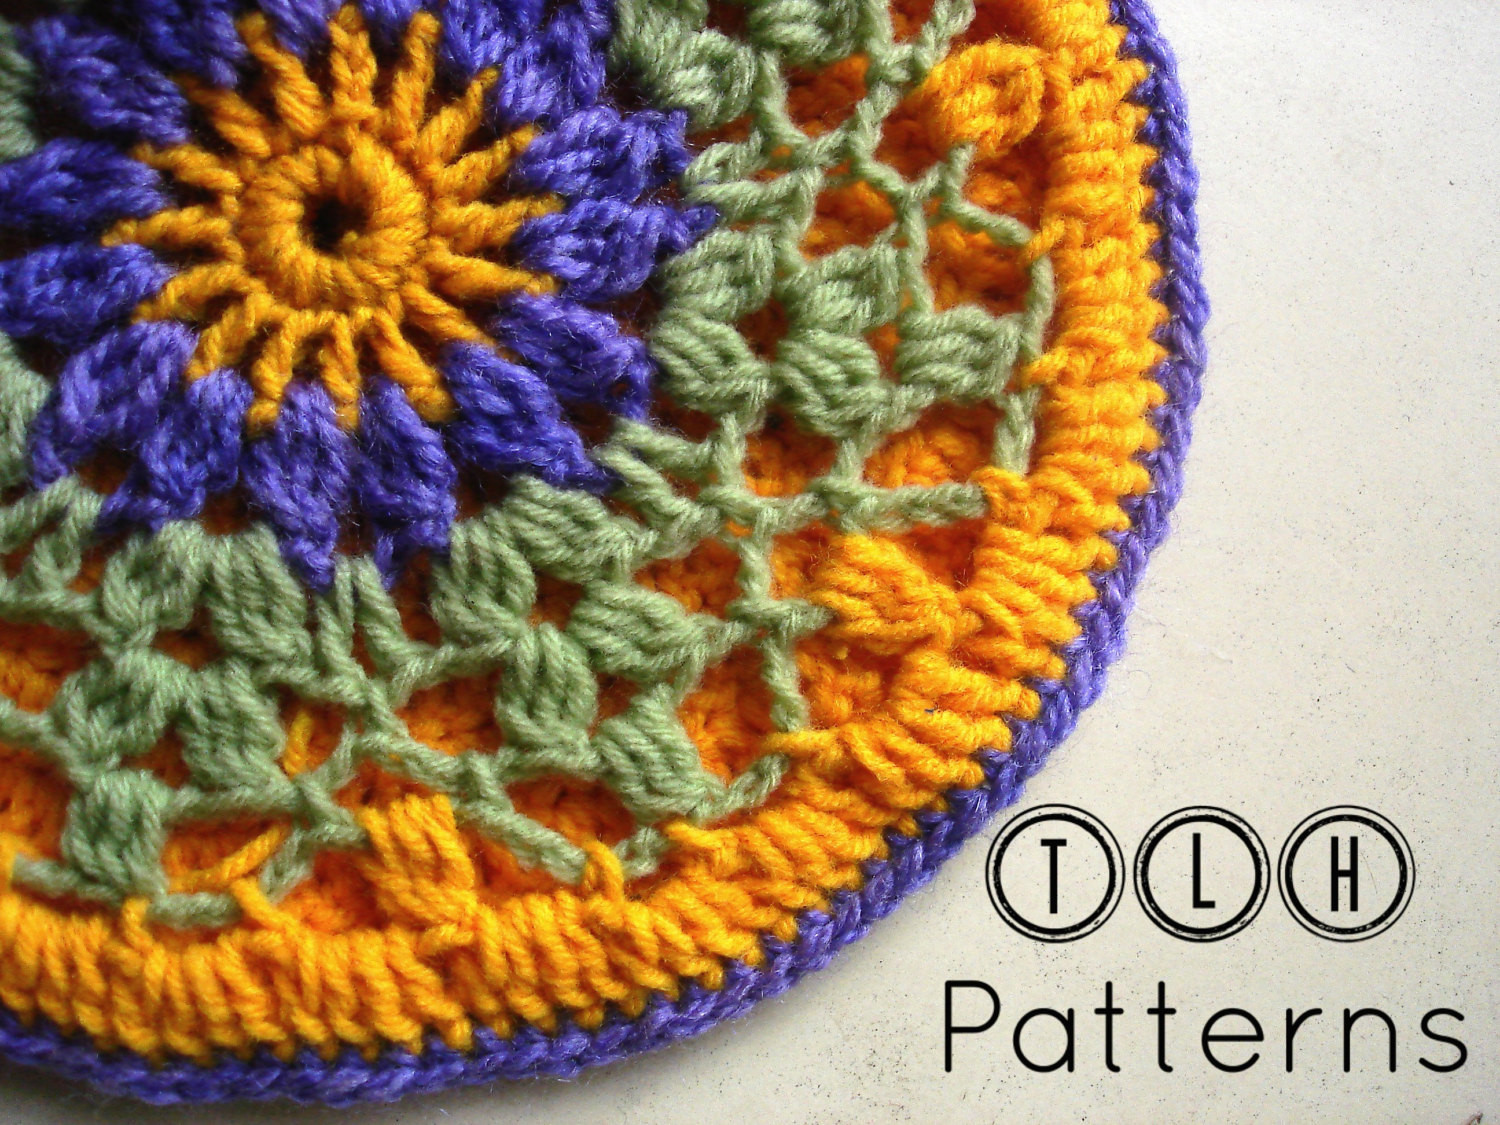 Crochet Potholder Pattern Beautiful Crochet Potholder Pattern Crochet Mandala Pattern Viola Of Amazing 43 Pictures Crochet Potholder Pattern